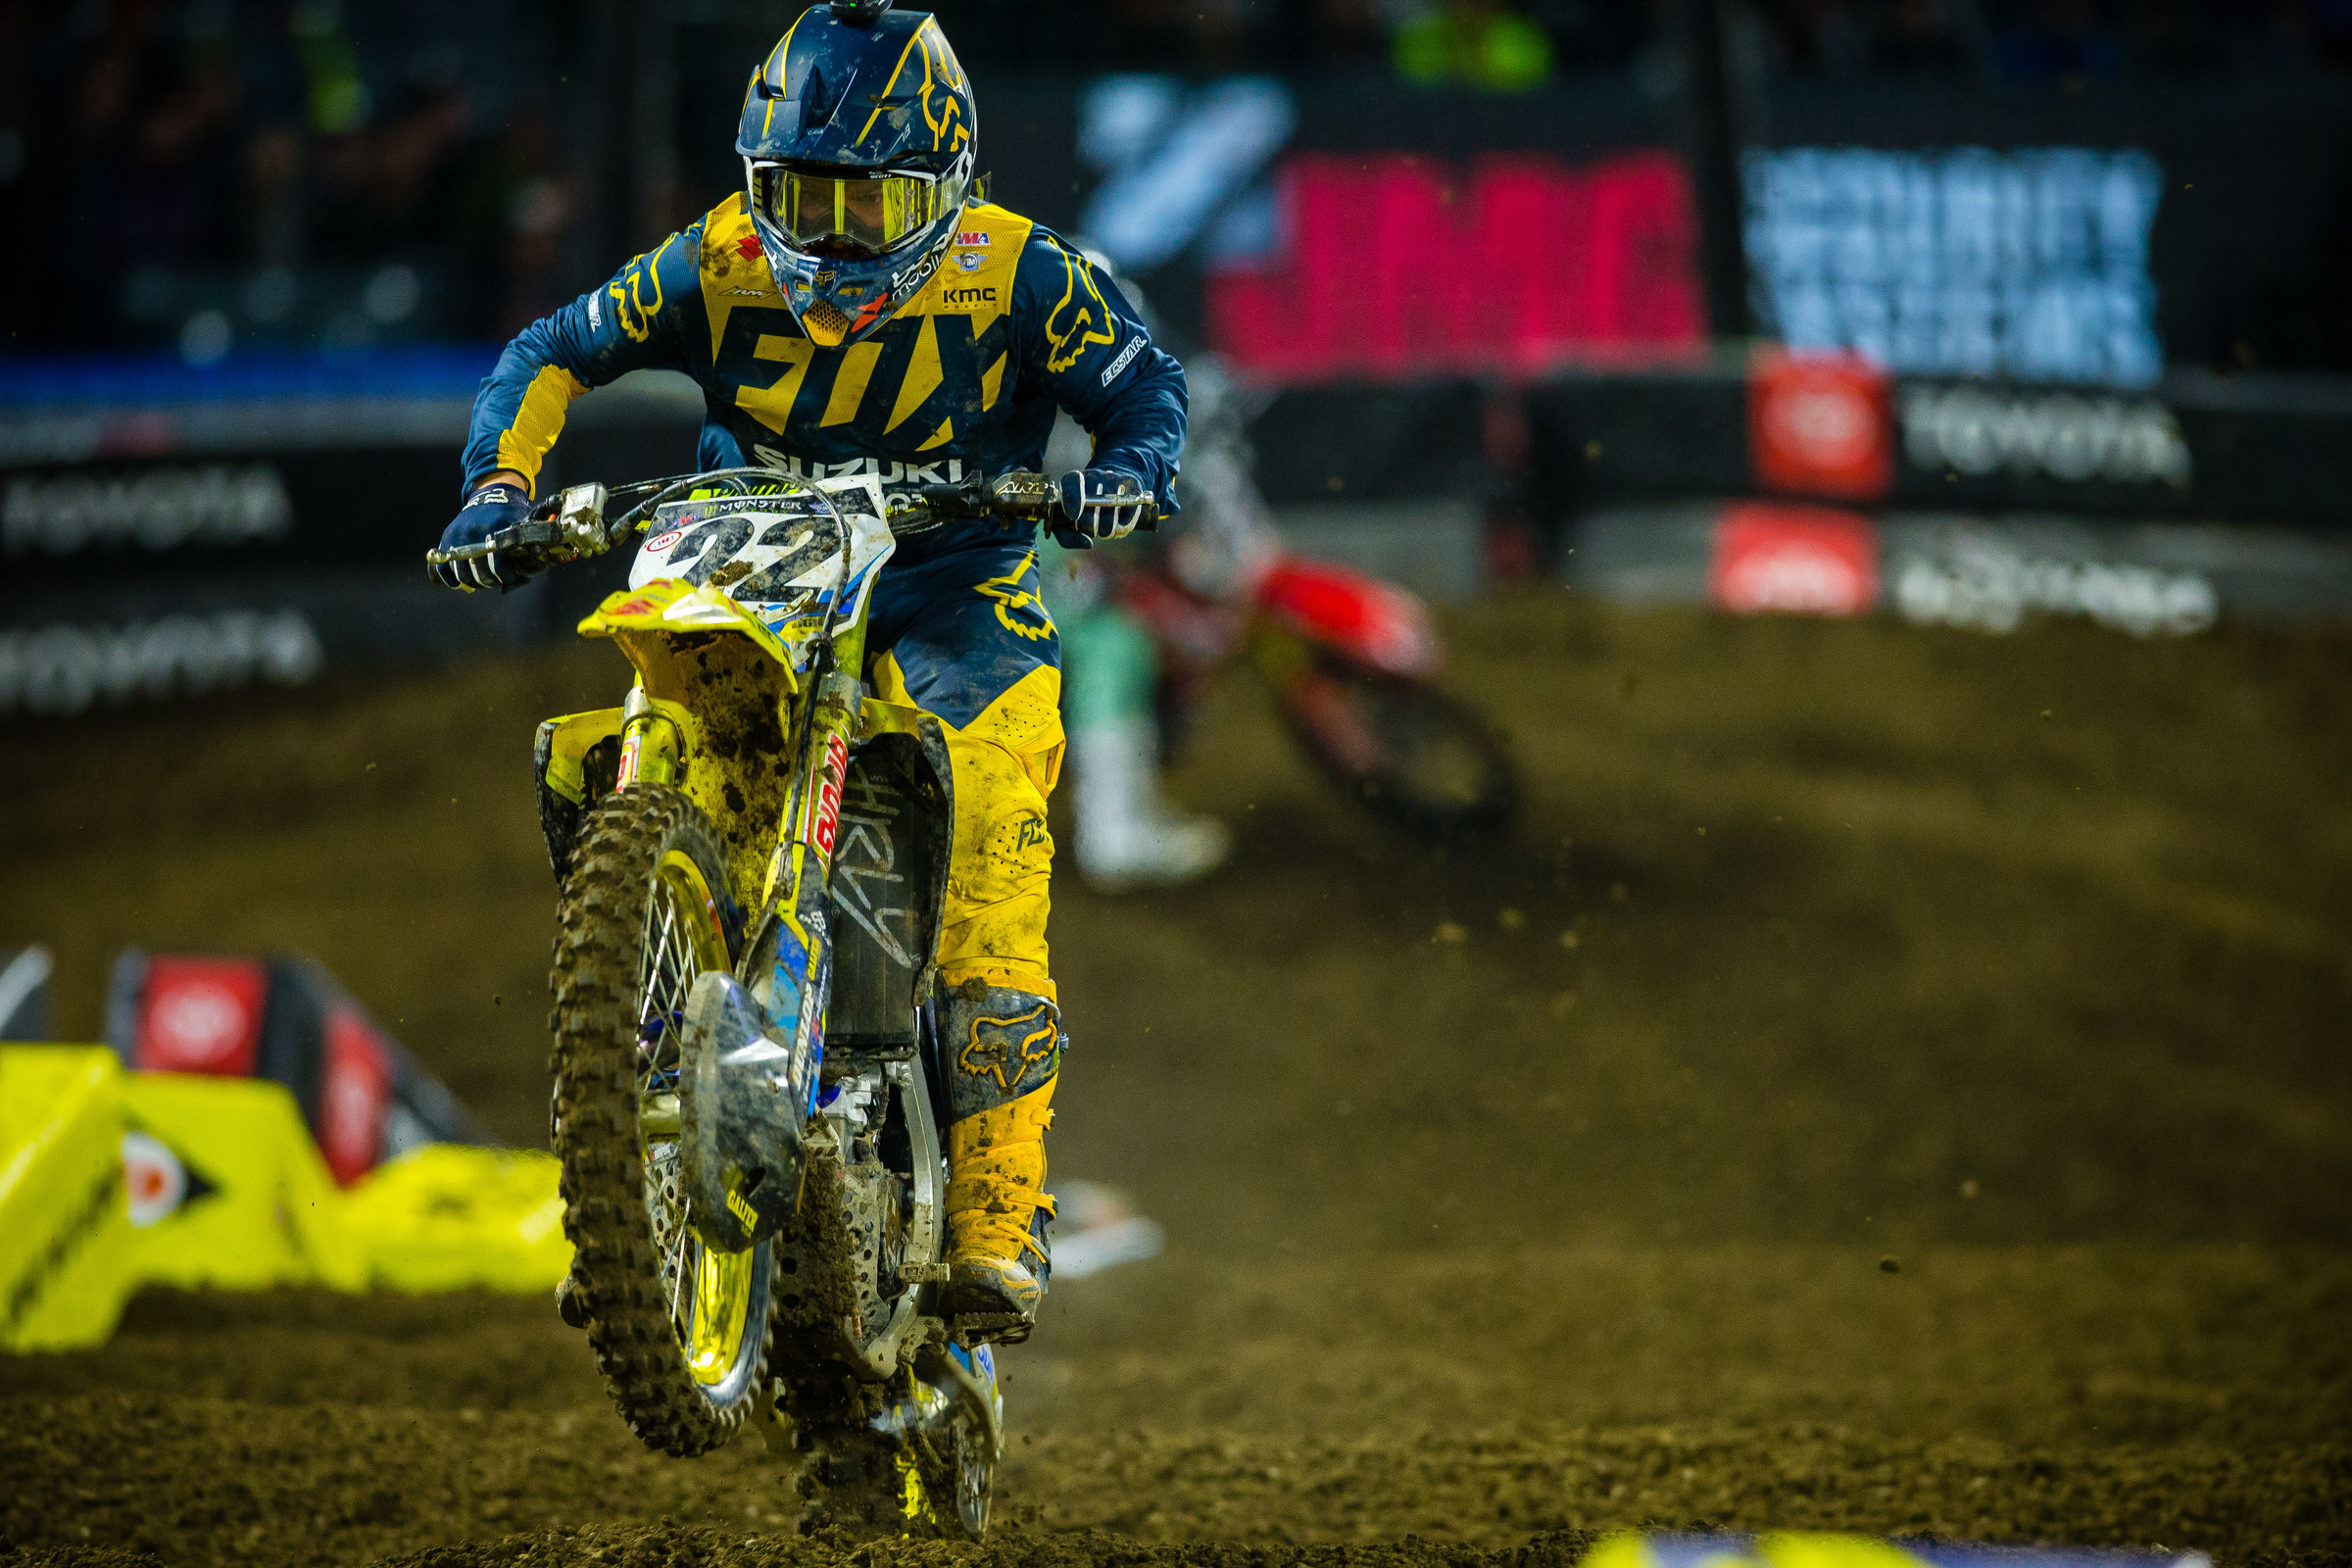 Although Reed finished ninth at Anaheim 1, on Saturday night the veteran added to his already historic career.